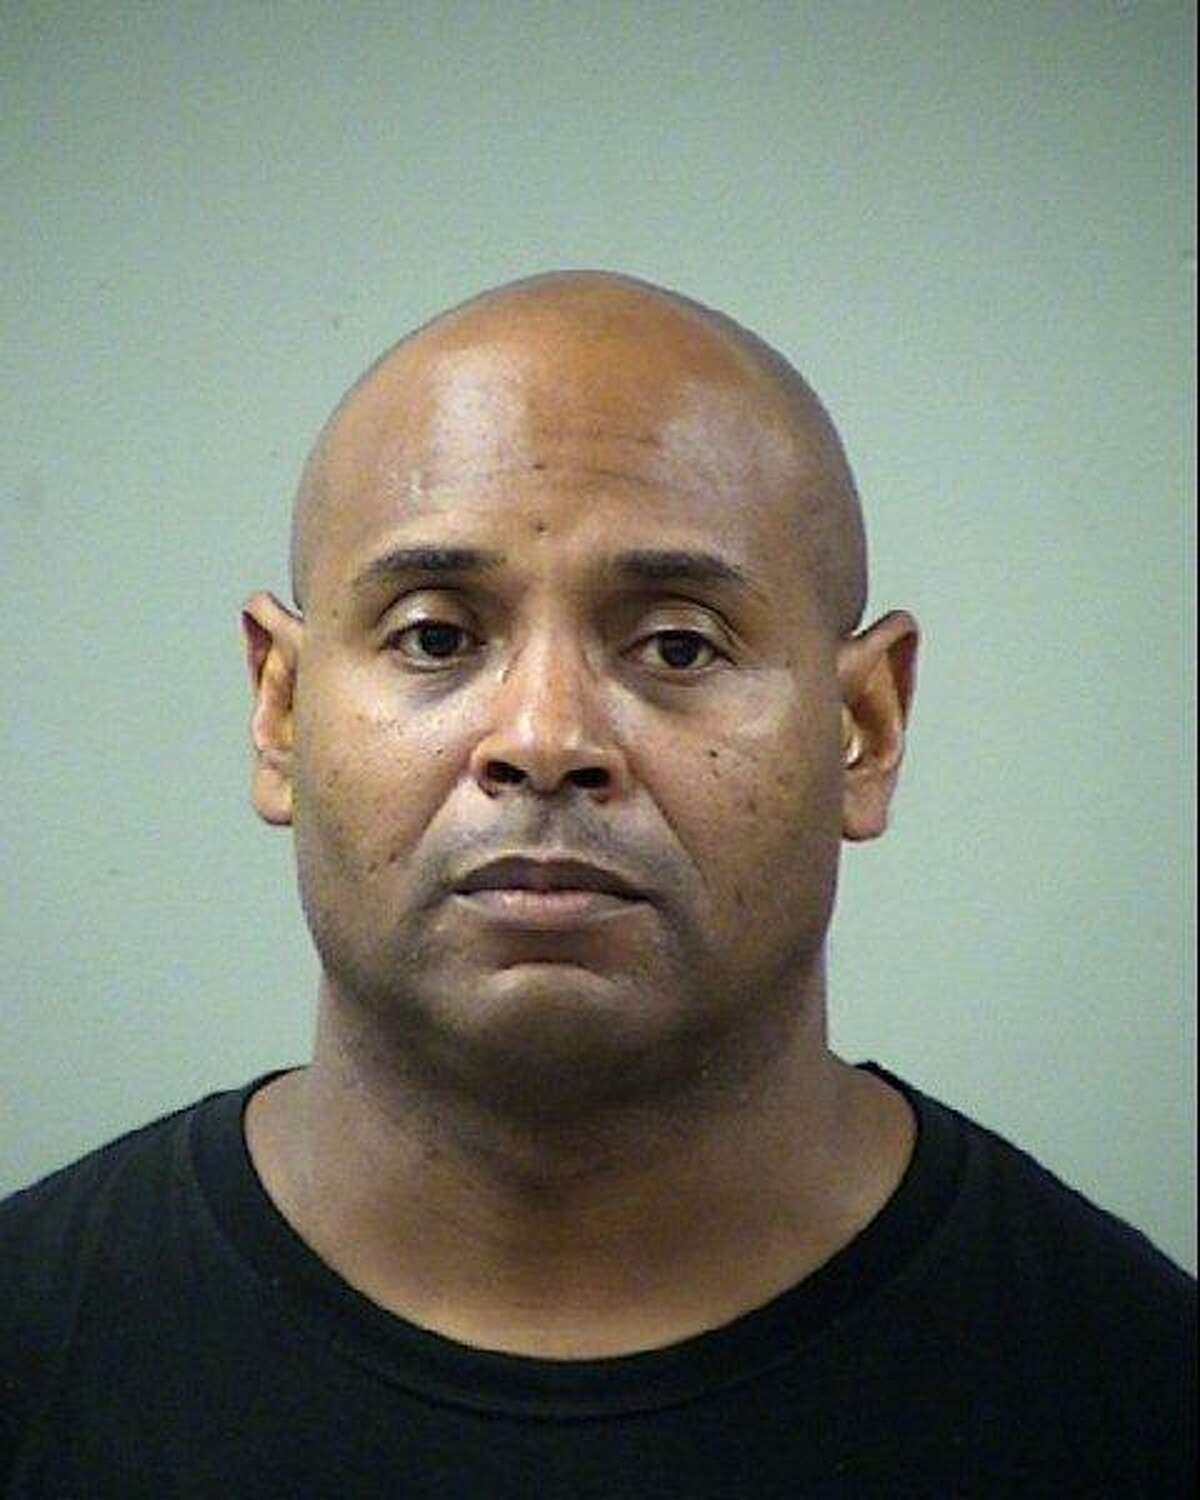 Bexar County Sheriff's Officer Joseph Barbier faces a charge of assault.